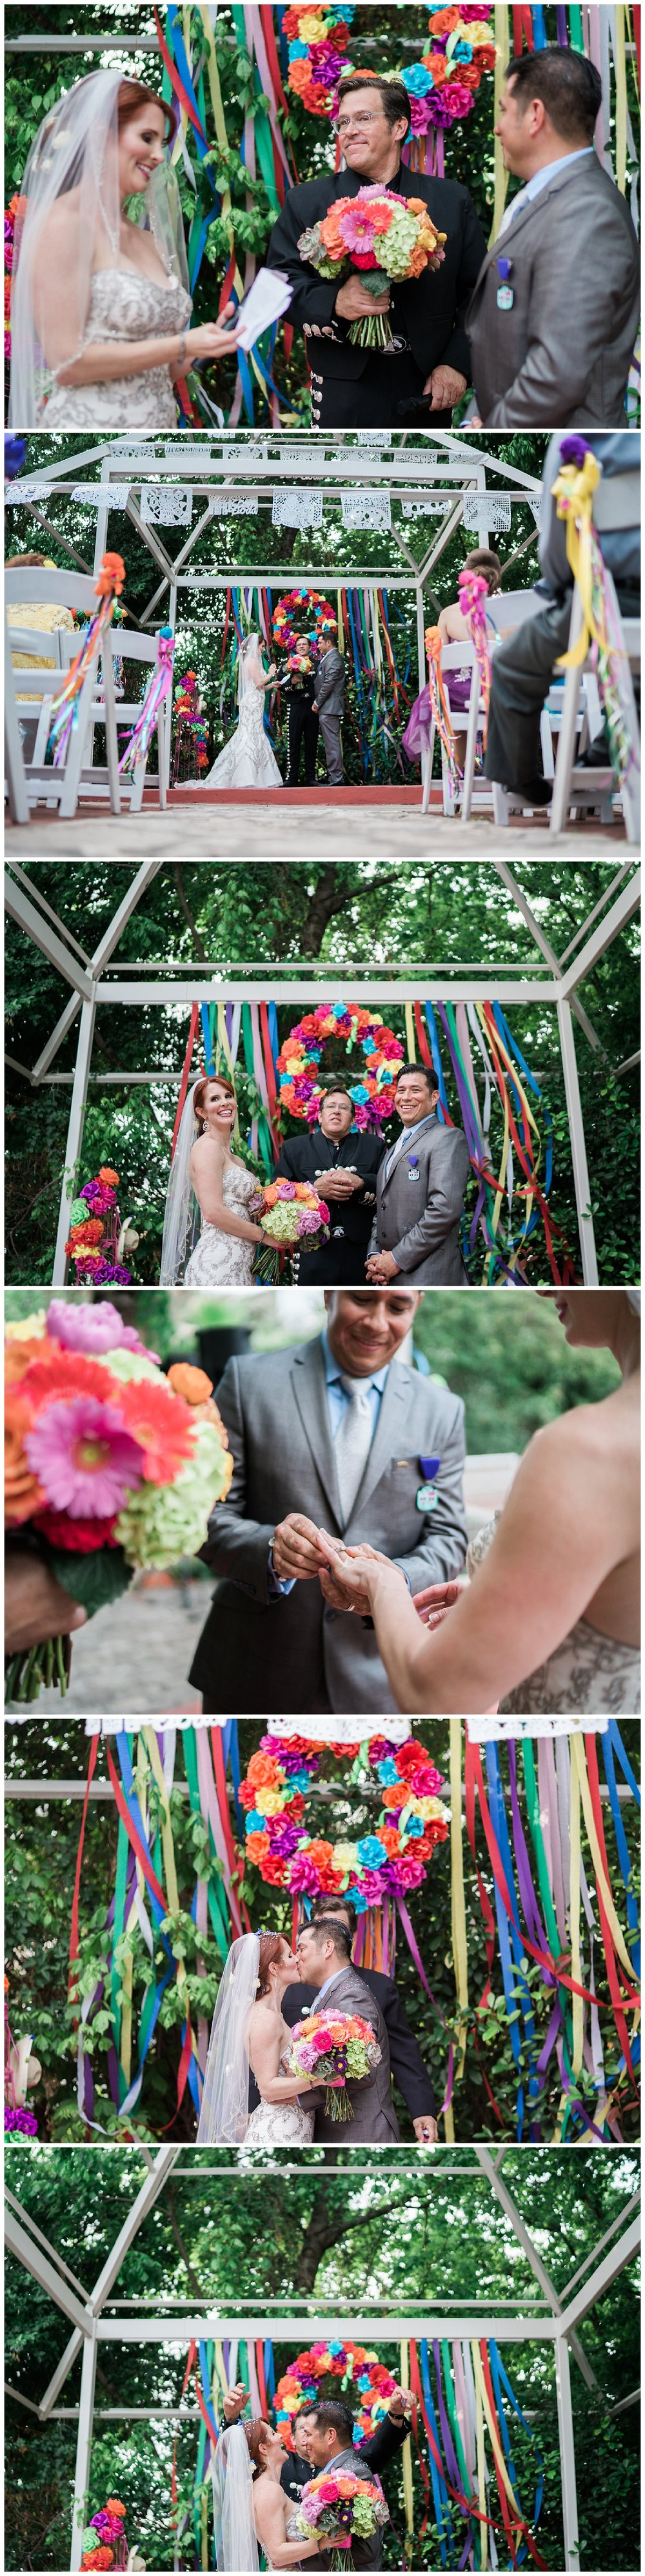 zaza garden fiesta wedding